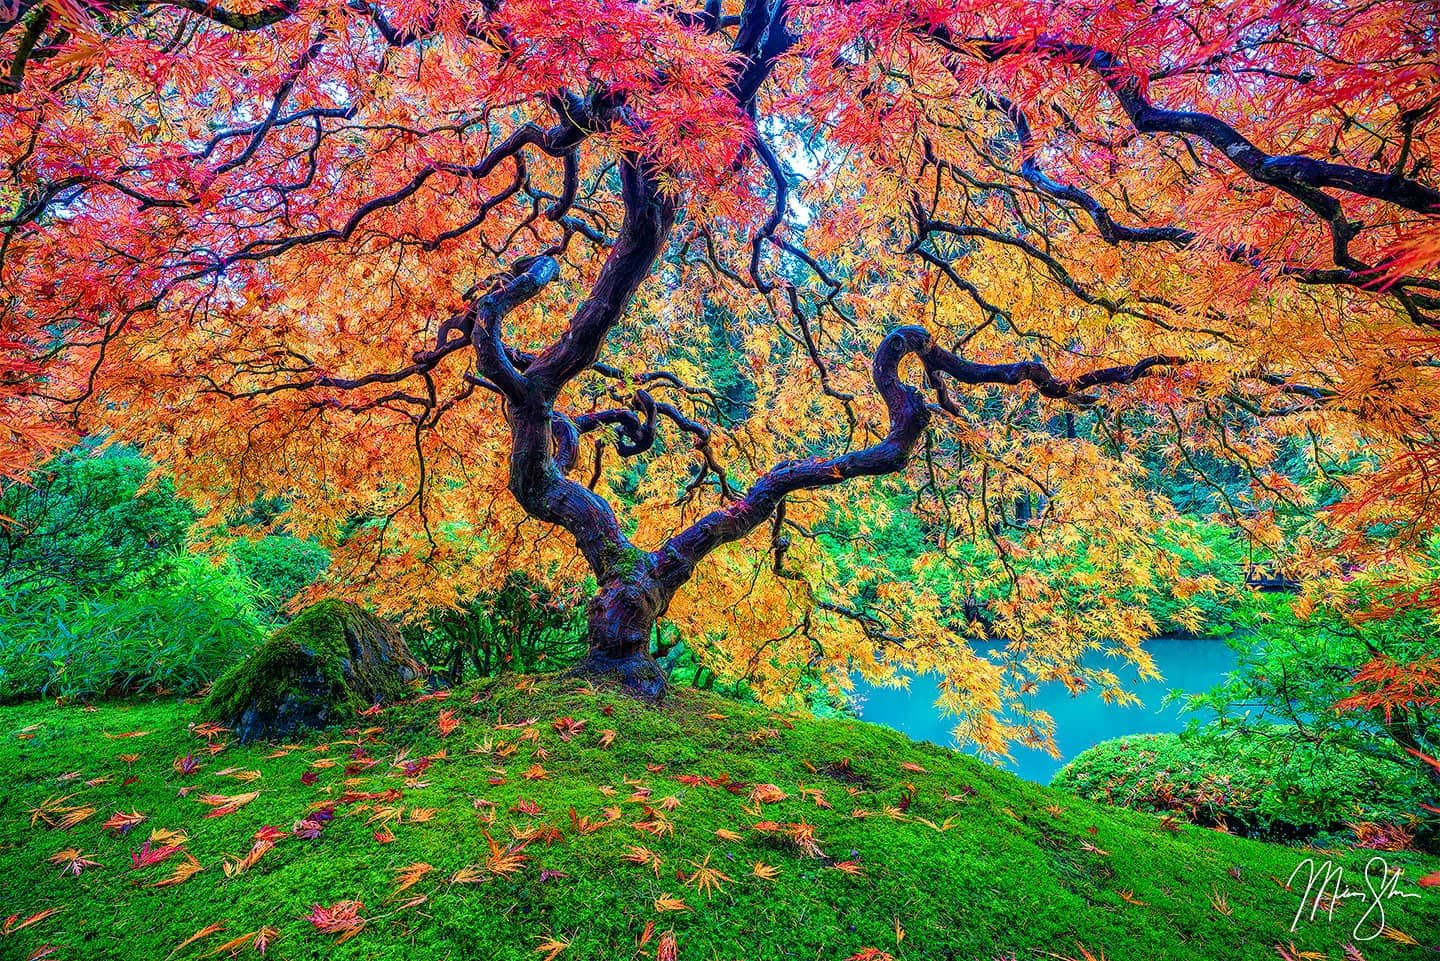 Limited edition luxury fine art print of Portland Japanese Garden's famous Japanese maple tree in Peter Lik Tree of Life style in the autumn